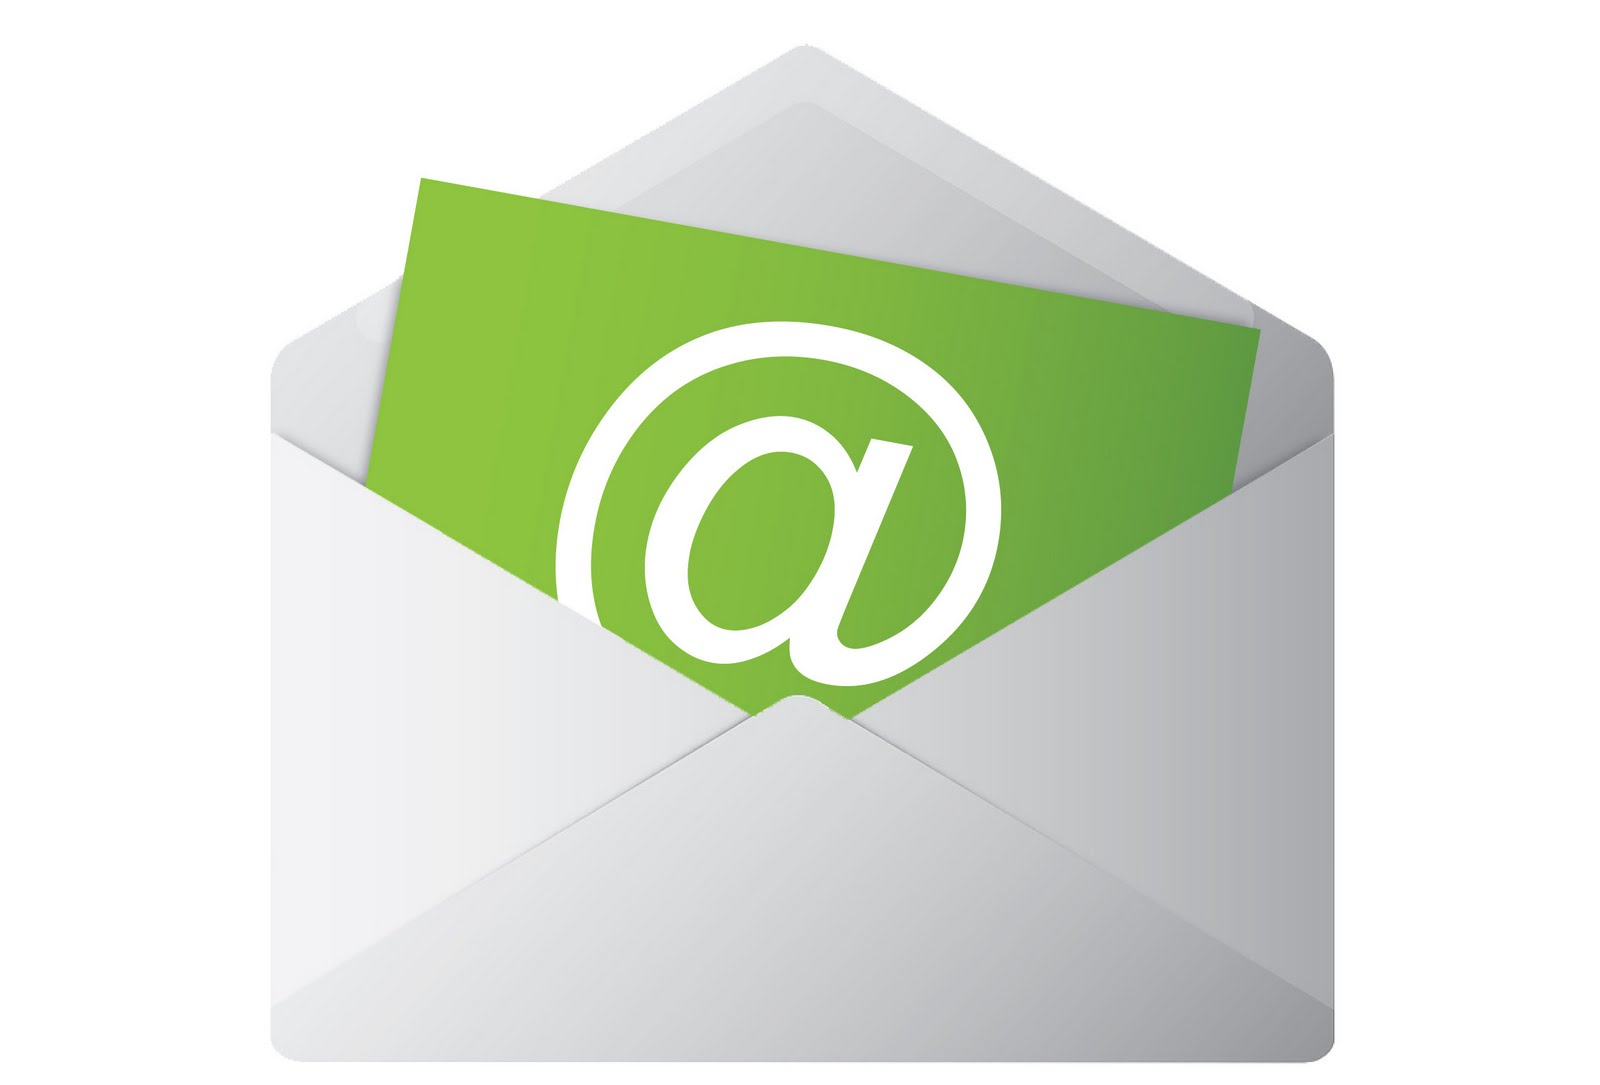 E newsletter icon